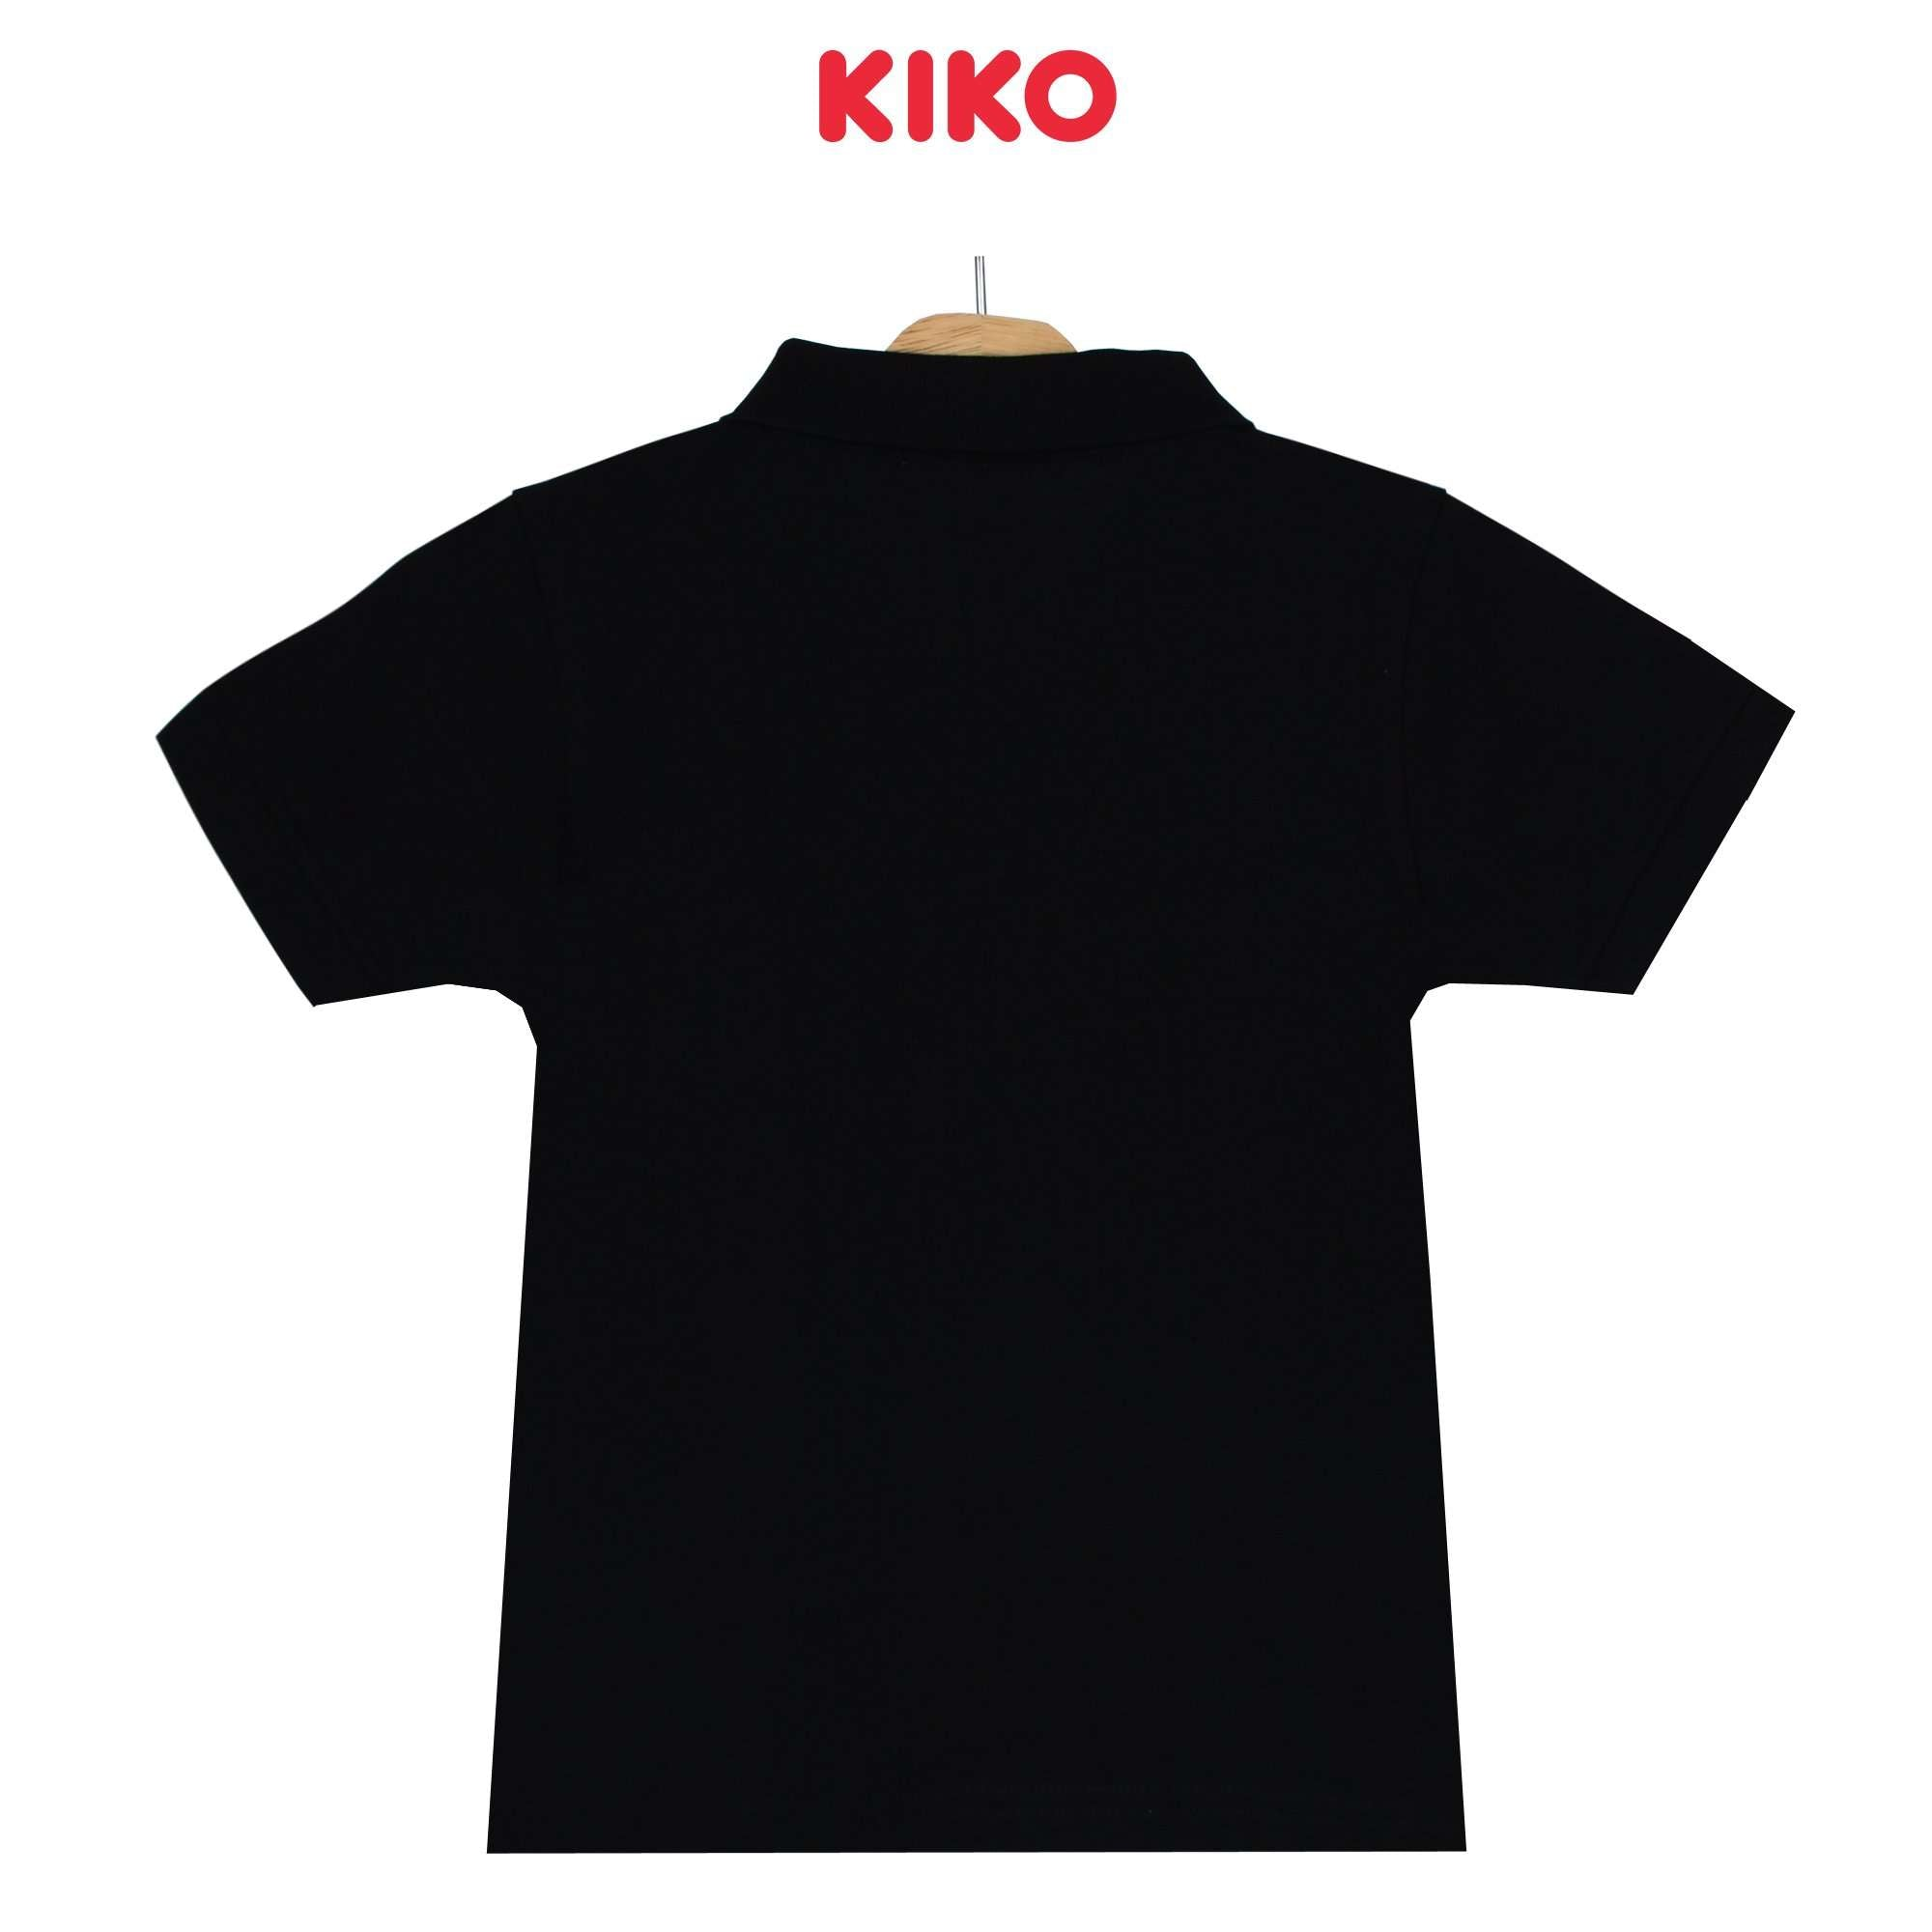 KIKO Boy Short Sleeve Collar Tee - Black 130096-122 : Buy KIKO online at CMG.MY